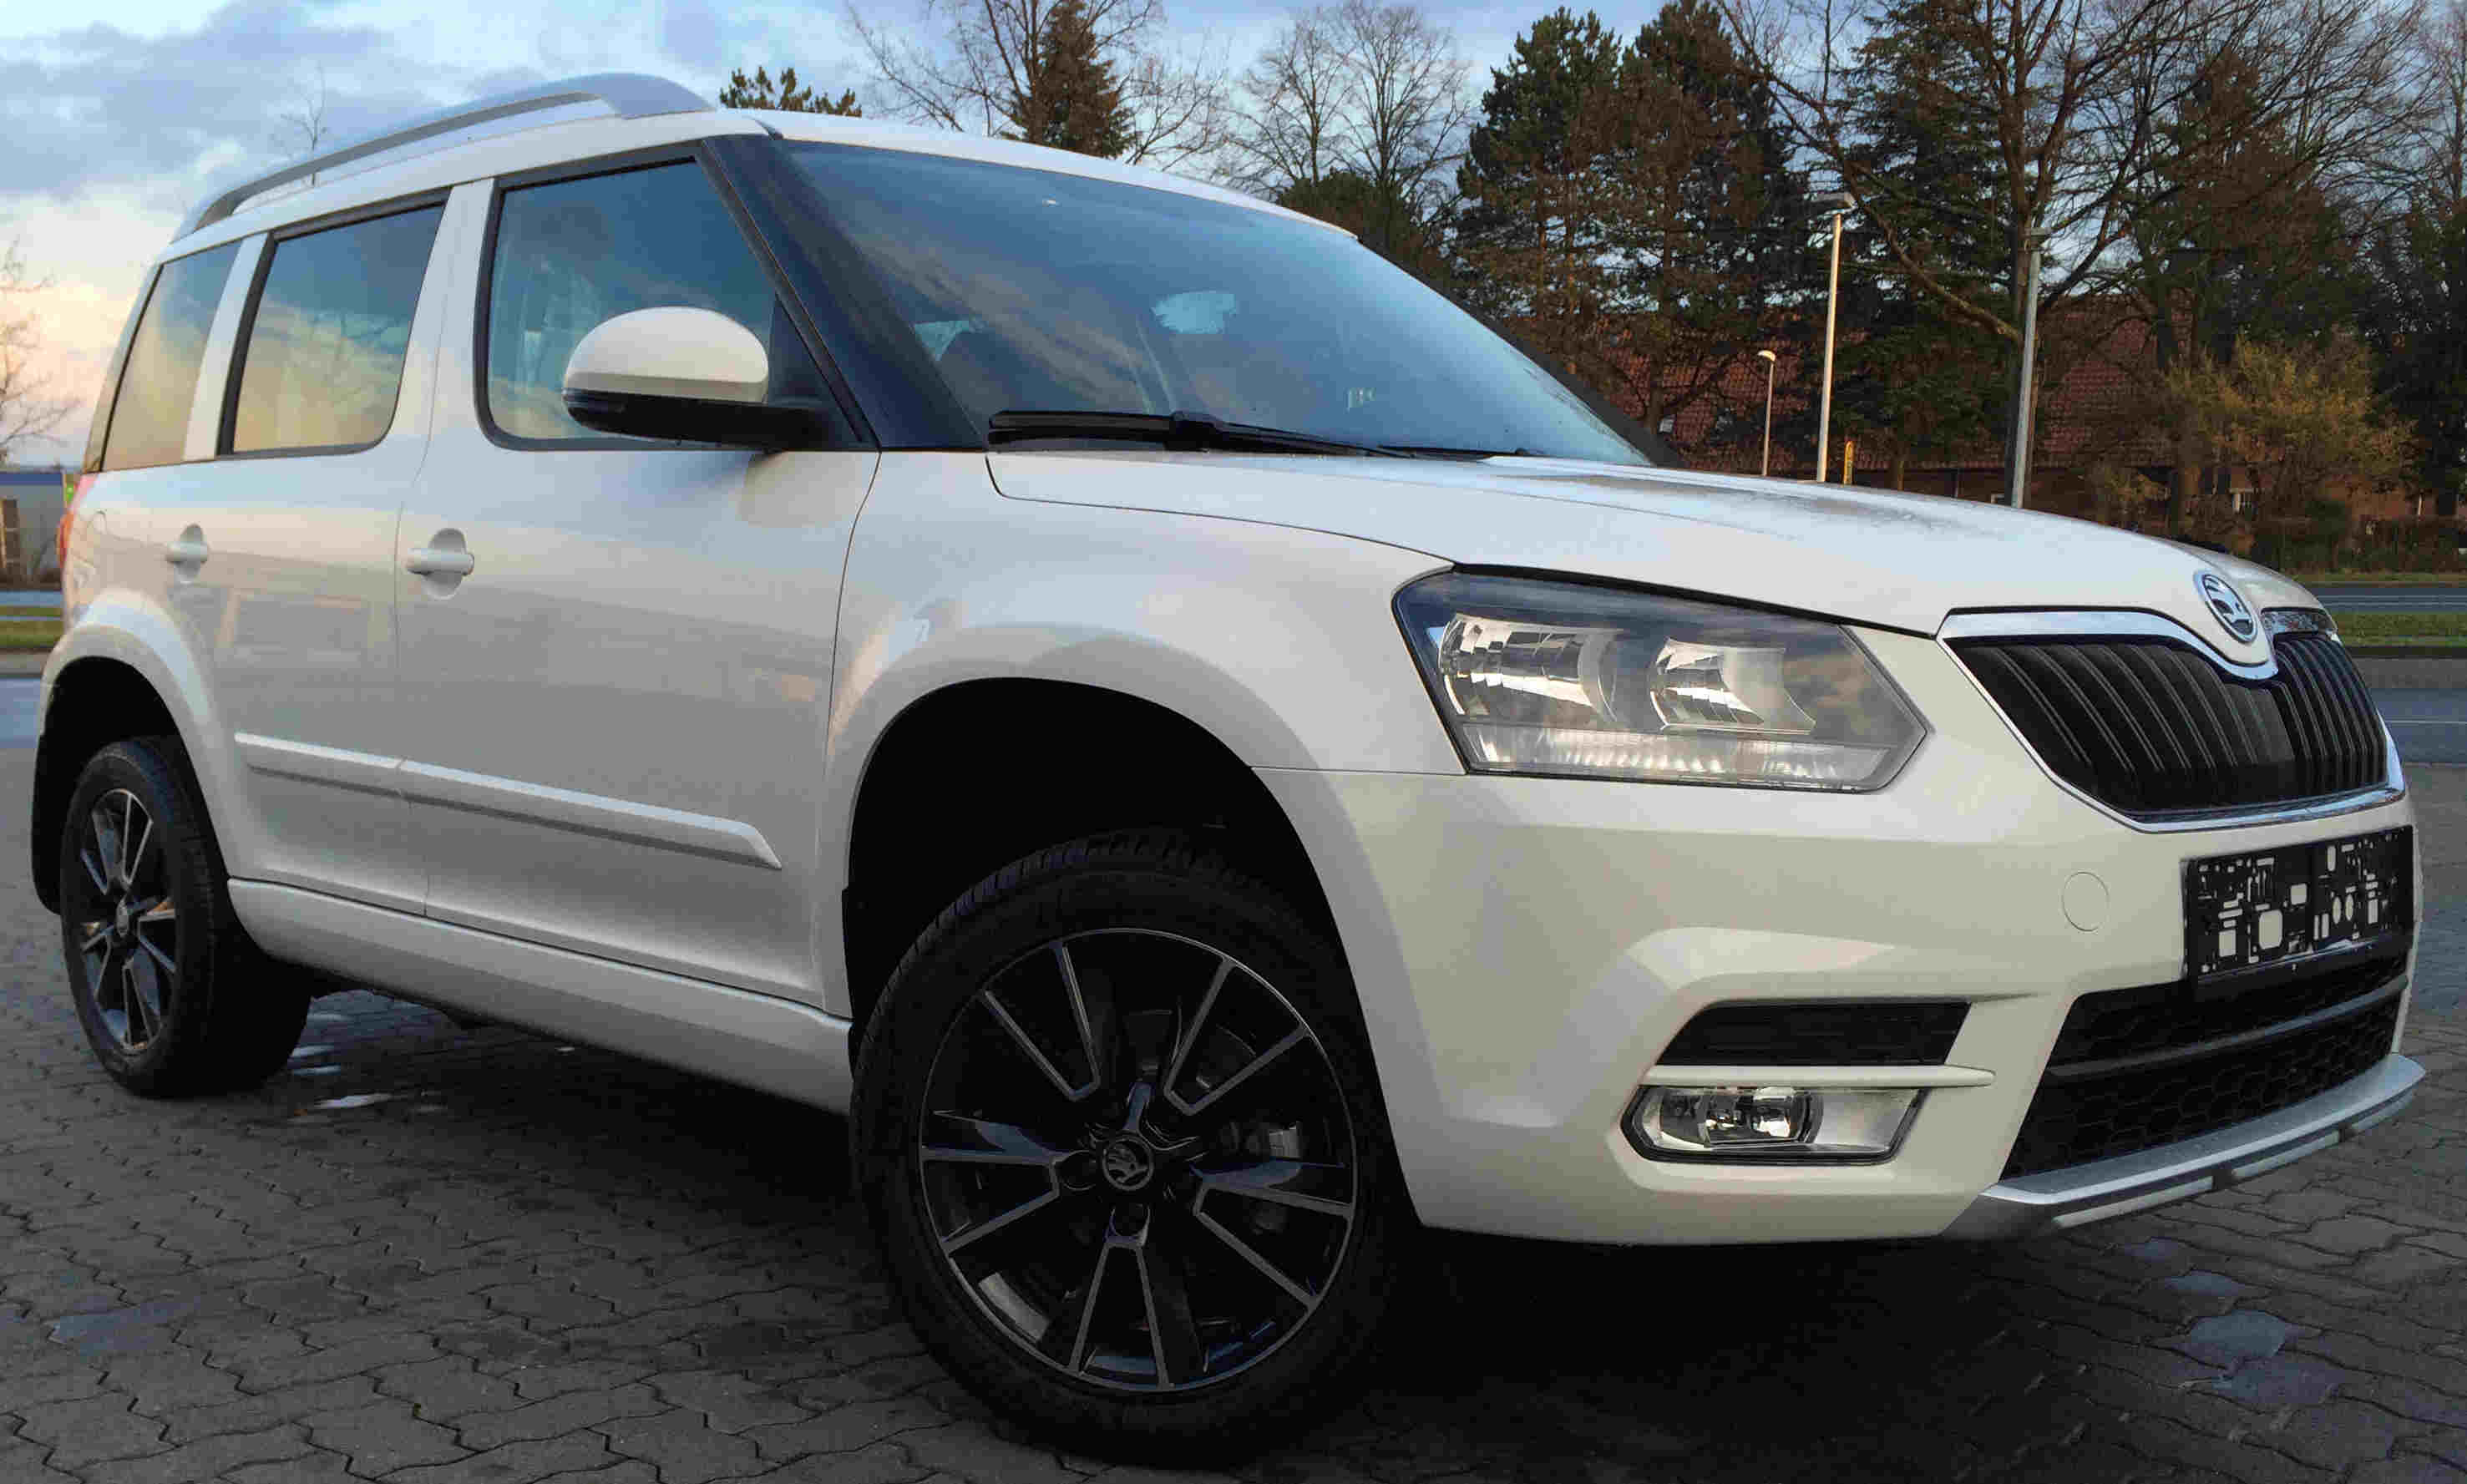 skoda yeti neues modell 2015 2016 active ambition elegance allrad 4x4 dsg eu neuwagen reimport. Black Bedroom Furniture Sets. Home Design Ideas